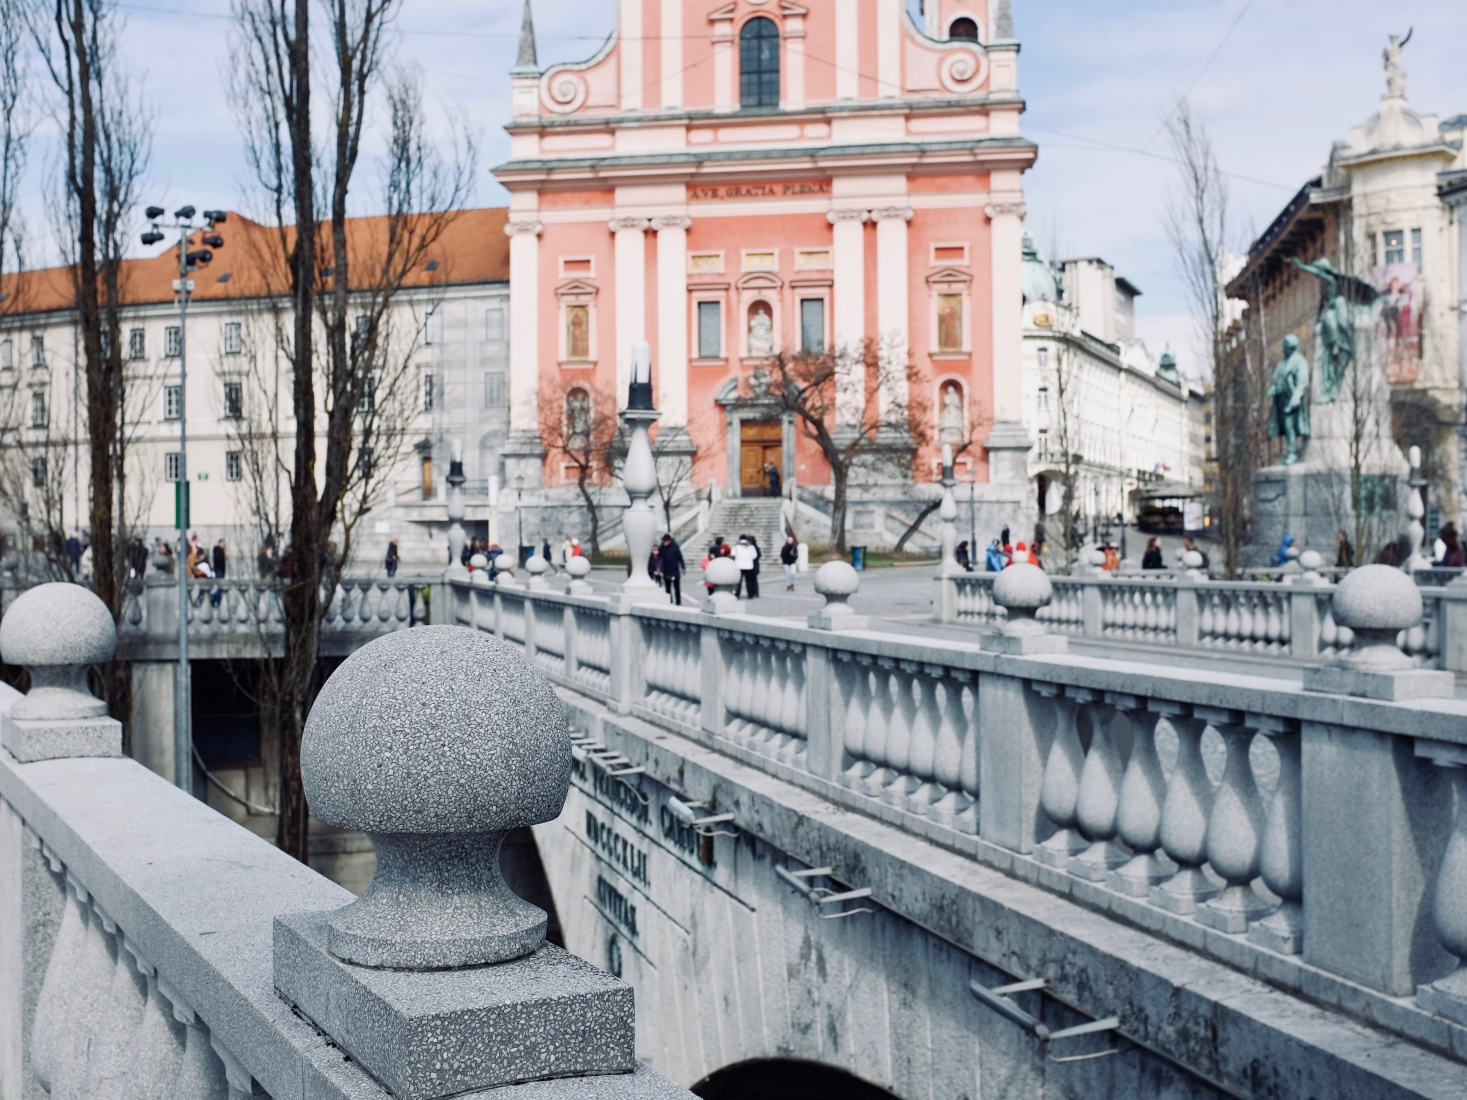 Triple Bridge in Ljubljana, Slovenia, designed by Jože Plečnik showing equal parts beauty and use, with a classical looking architecture design over the Ljubljanica River.